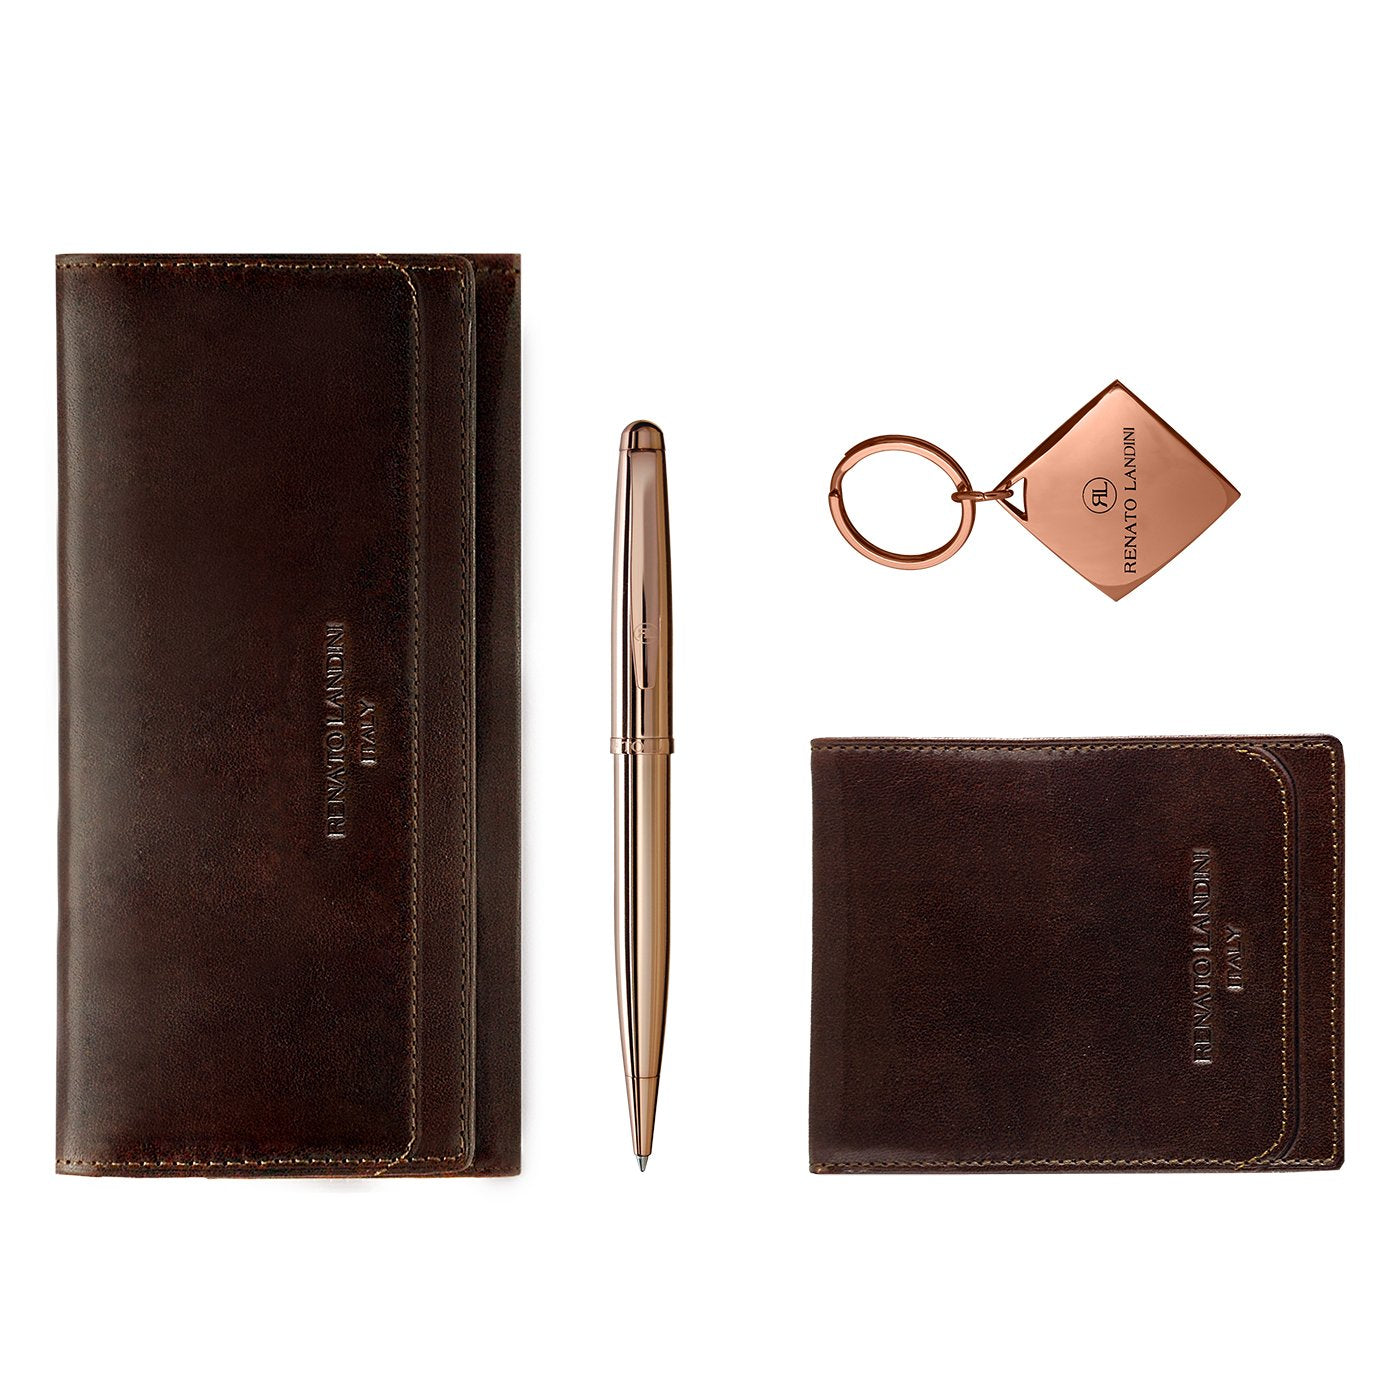 RENATO LANDINI Pen + Wallet Set + Key-Holder